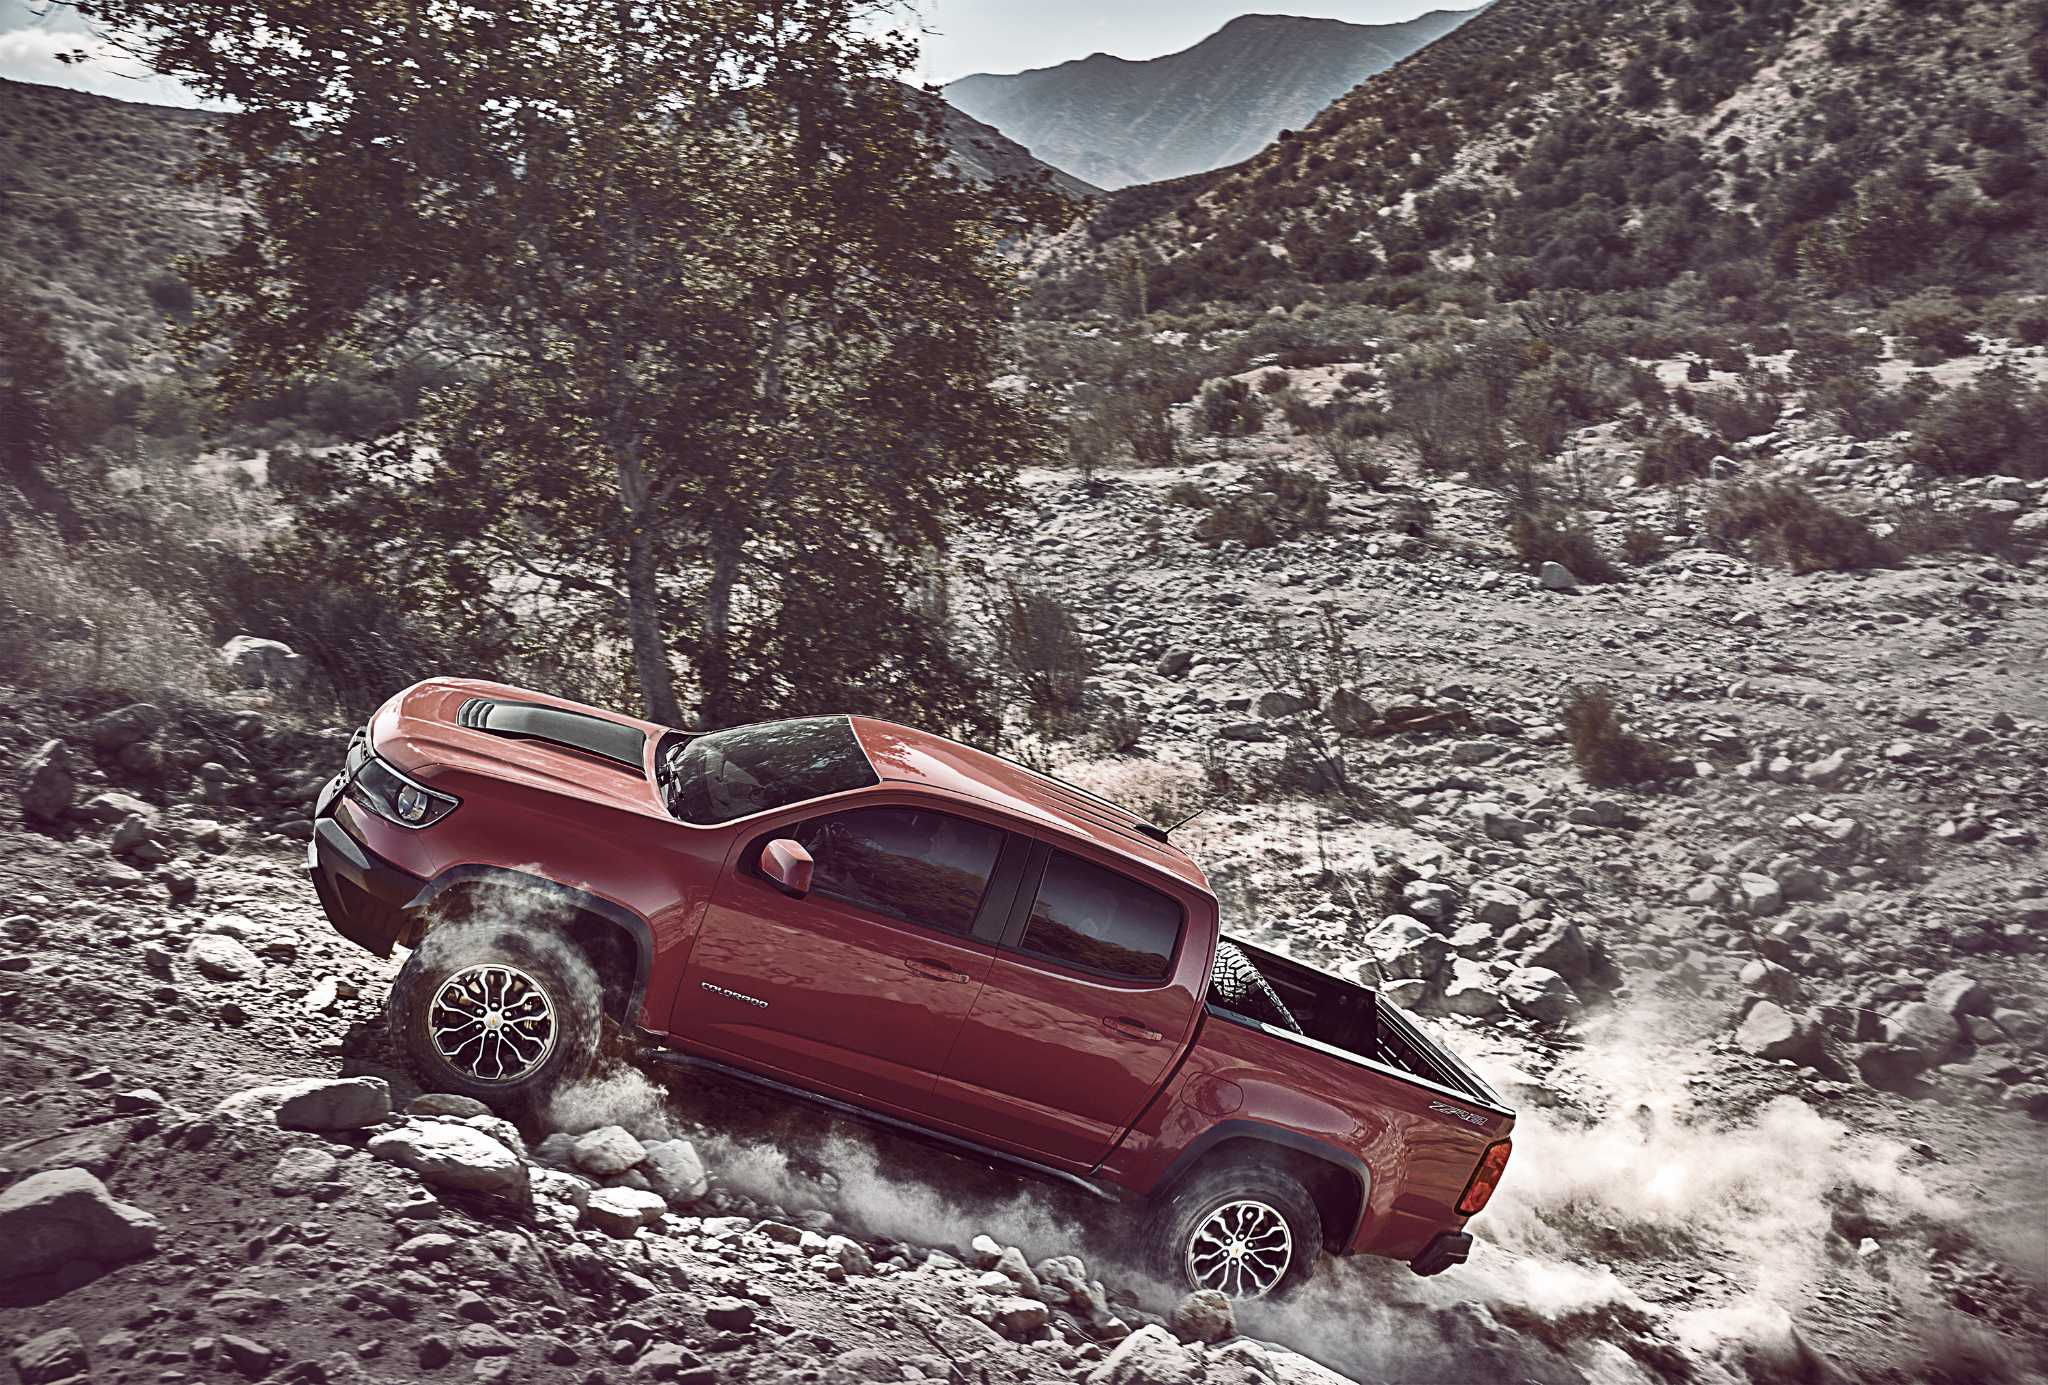 Chevy's tough new Colorado ZR2 ready to play dirty